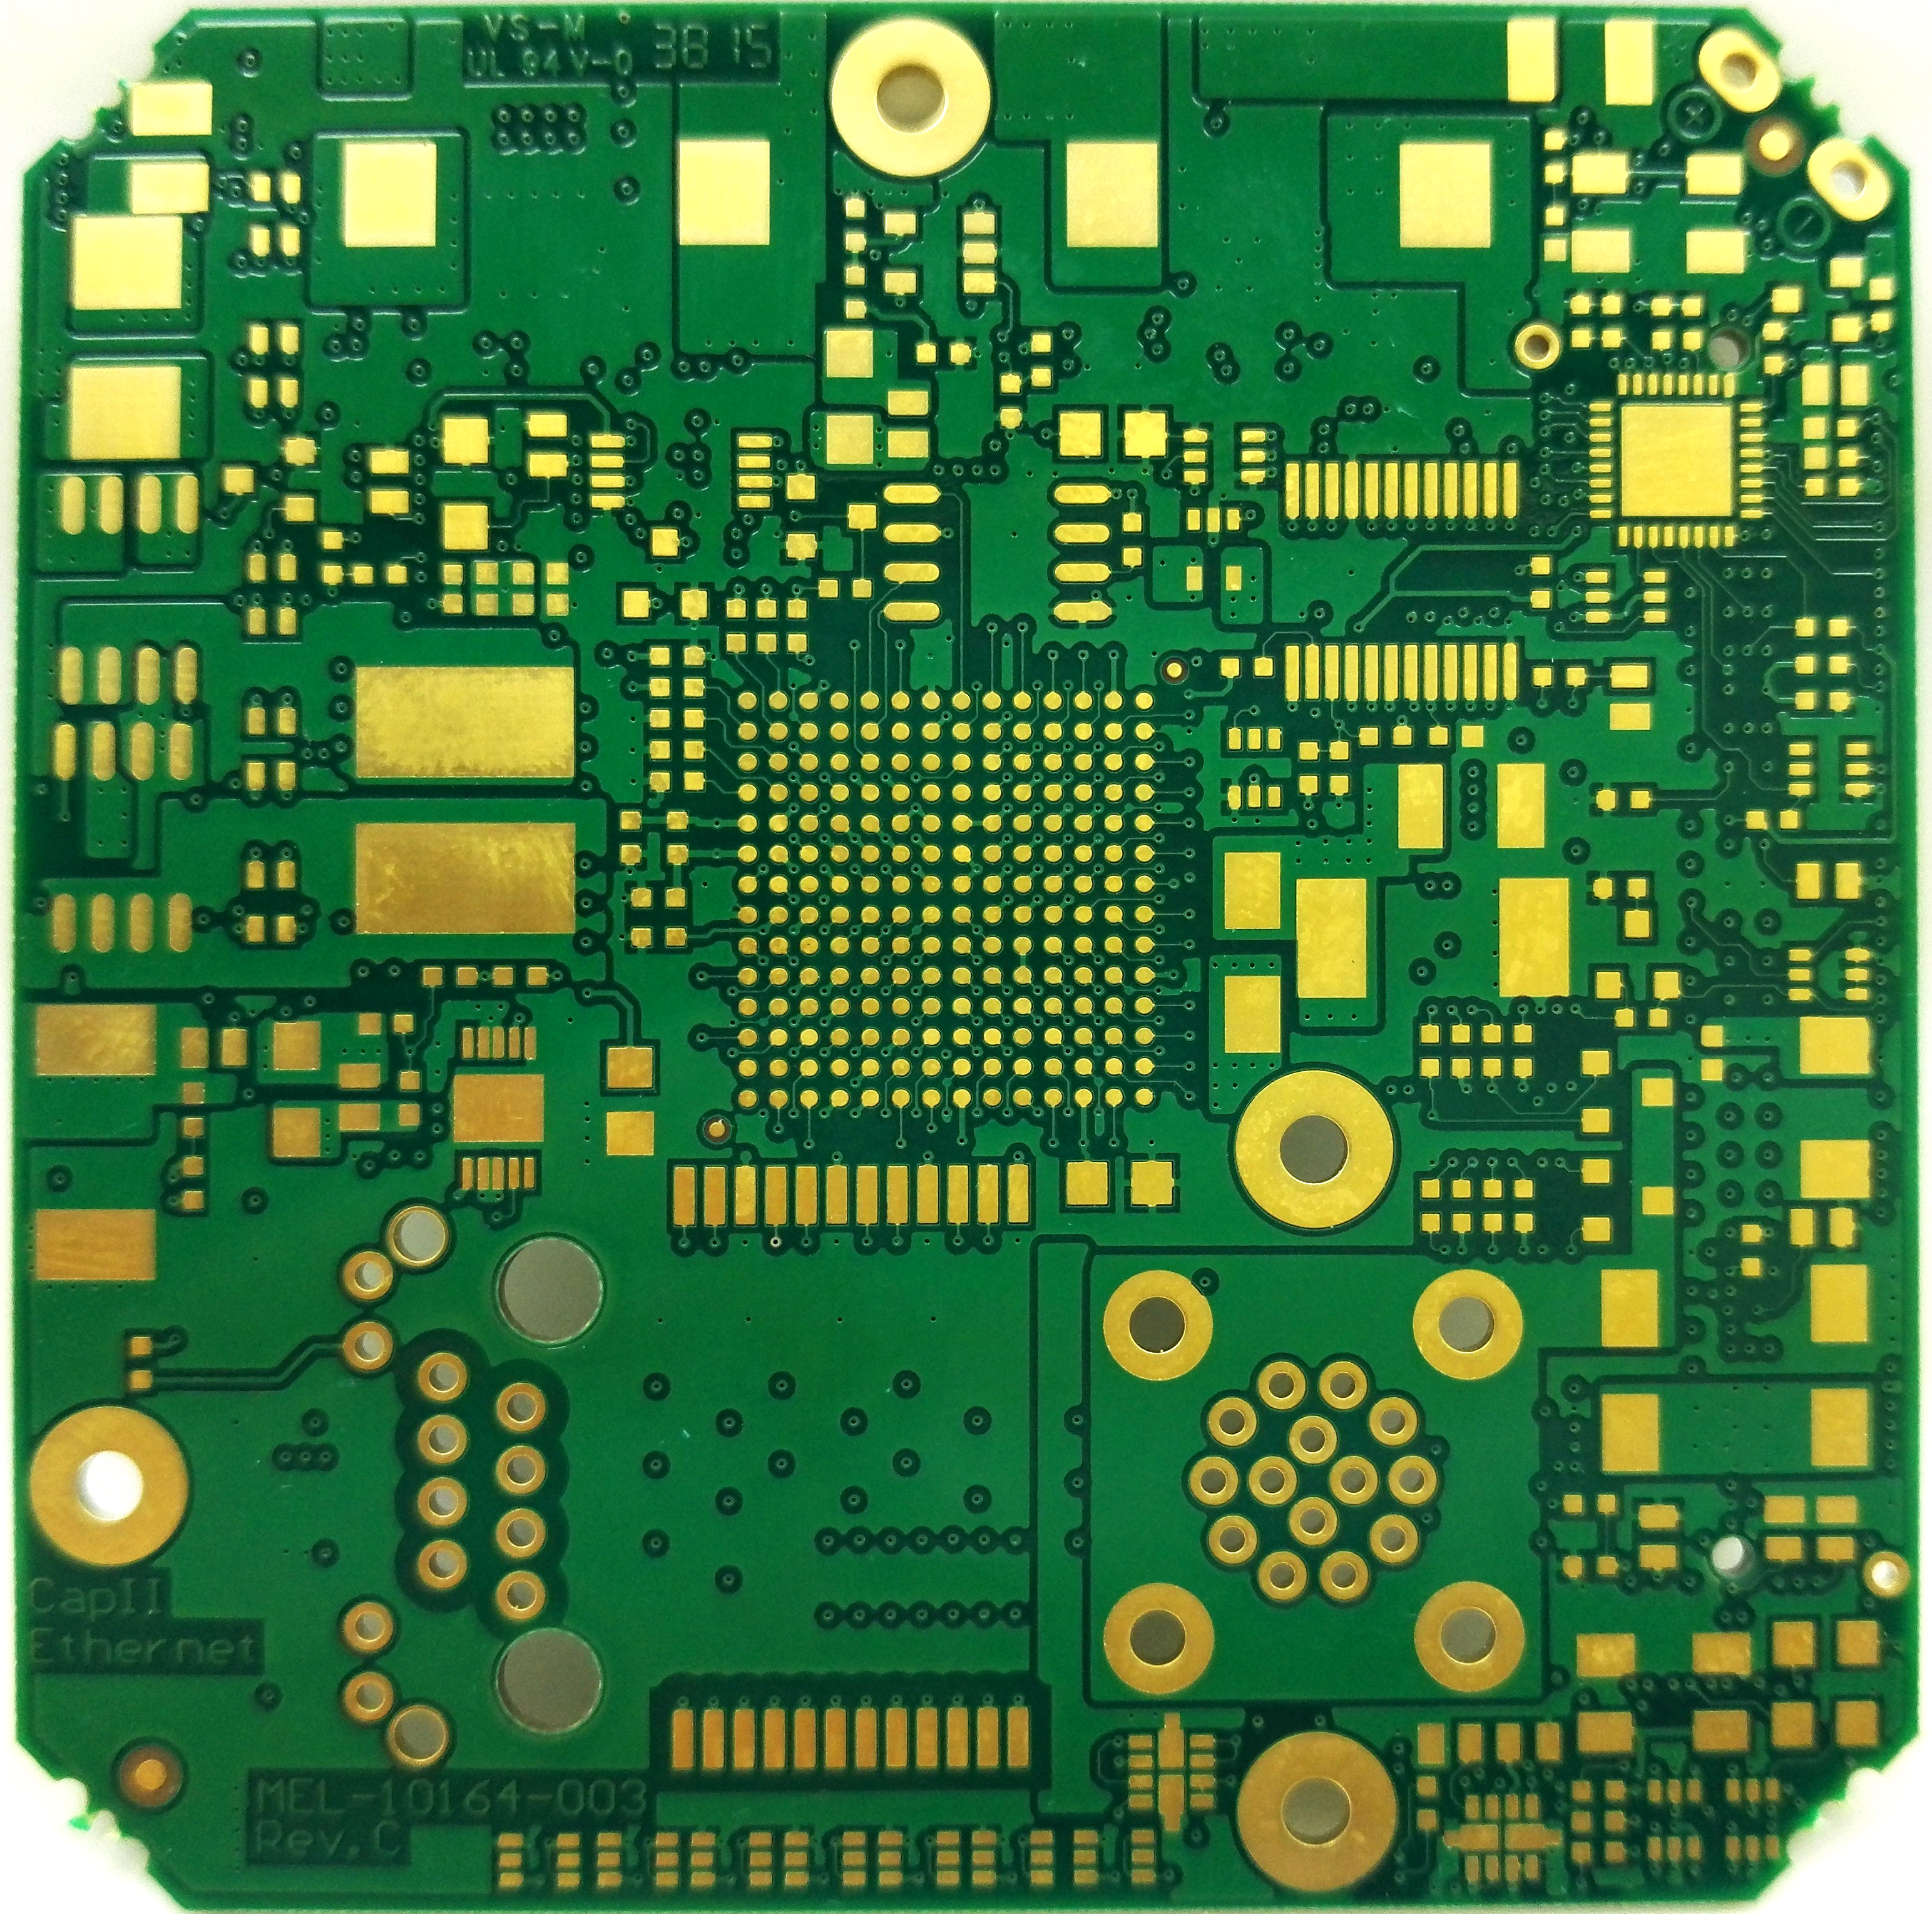 Analyze the role of matching resistors in PCB board design